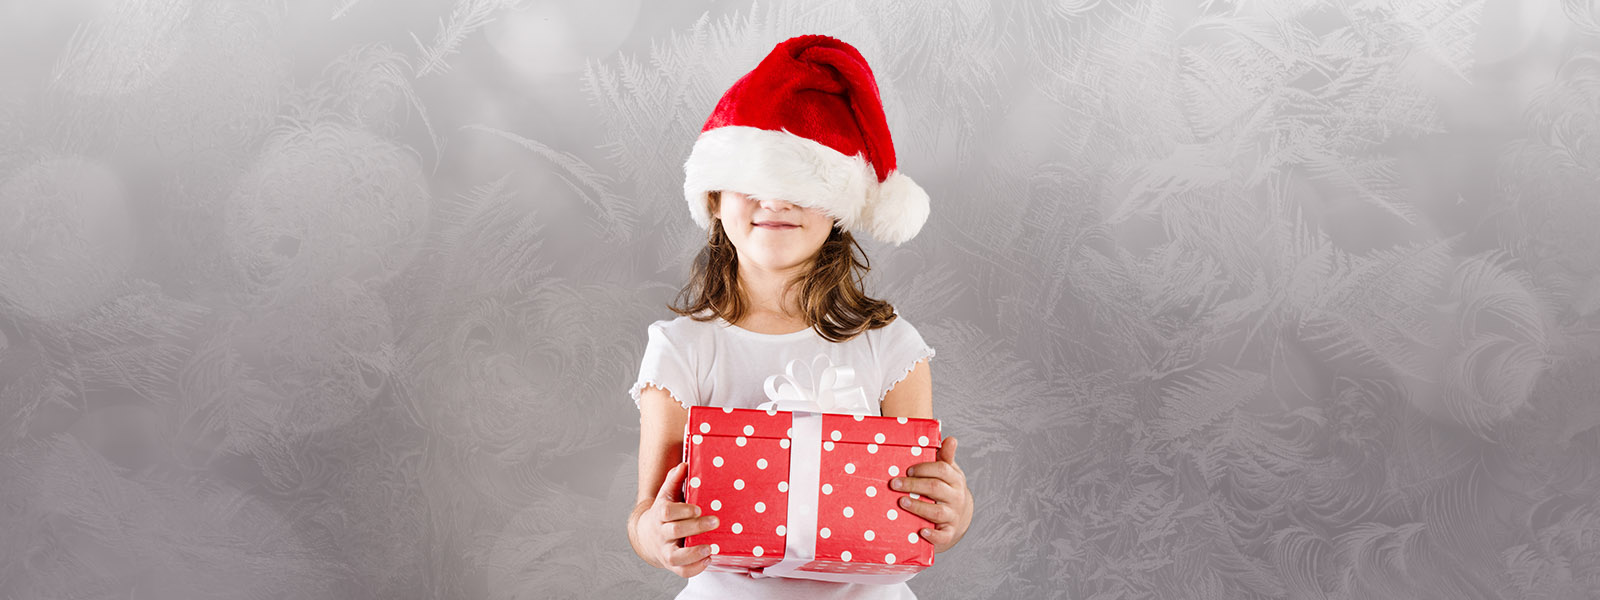 Girl holding a gift with a Santa hat covering her eyes.